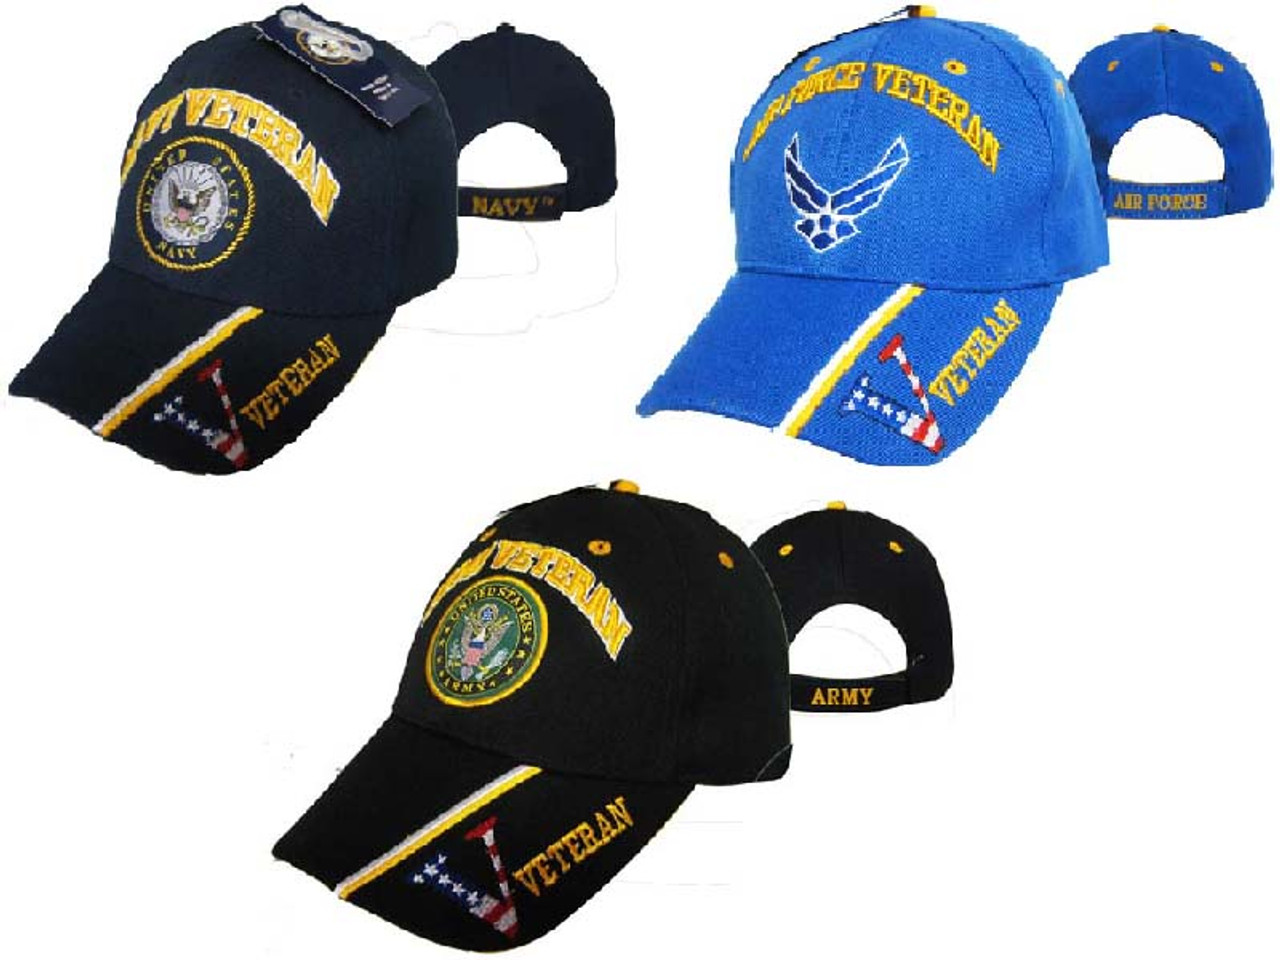 284f455c07dd3 U.S. MILITARY VETERAN (ARMY NAVY AIRFORCE) OFFICIALLY LICENSED Baseball Cap  Hat